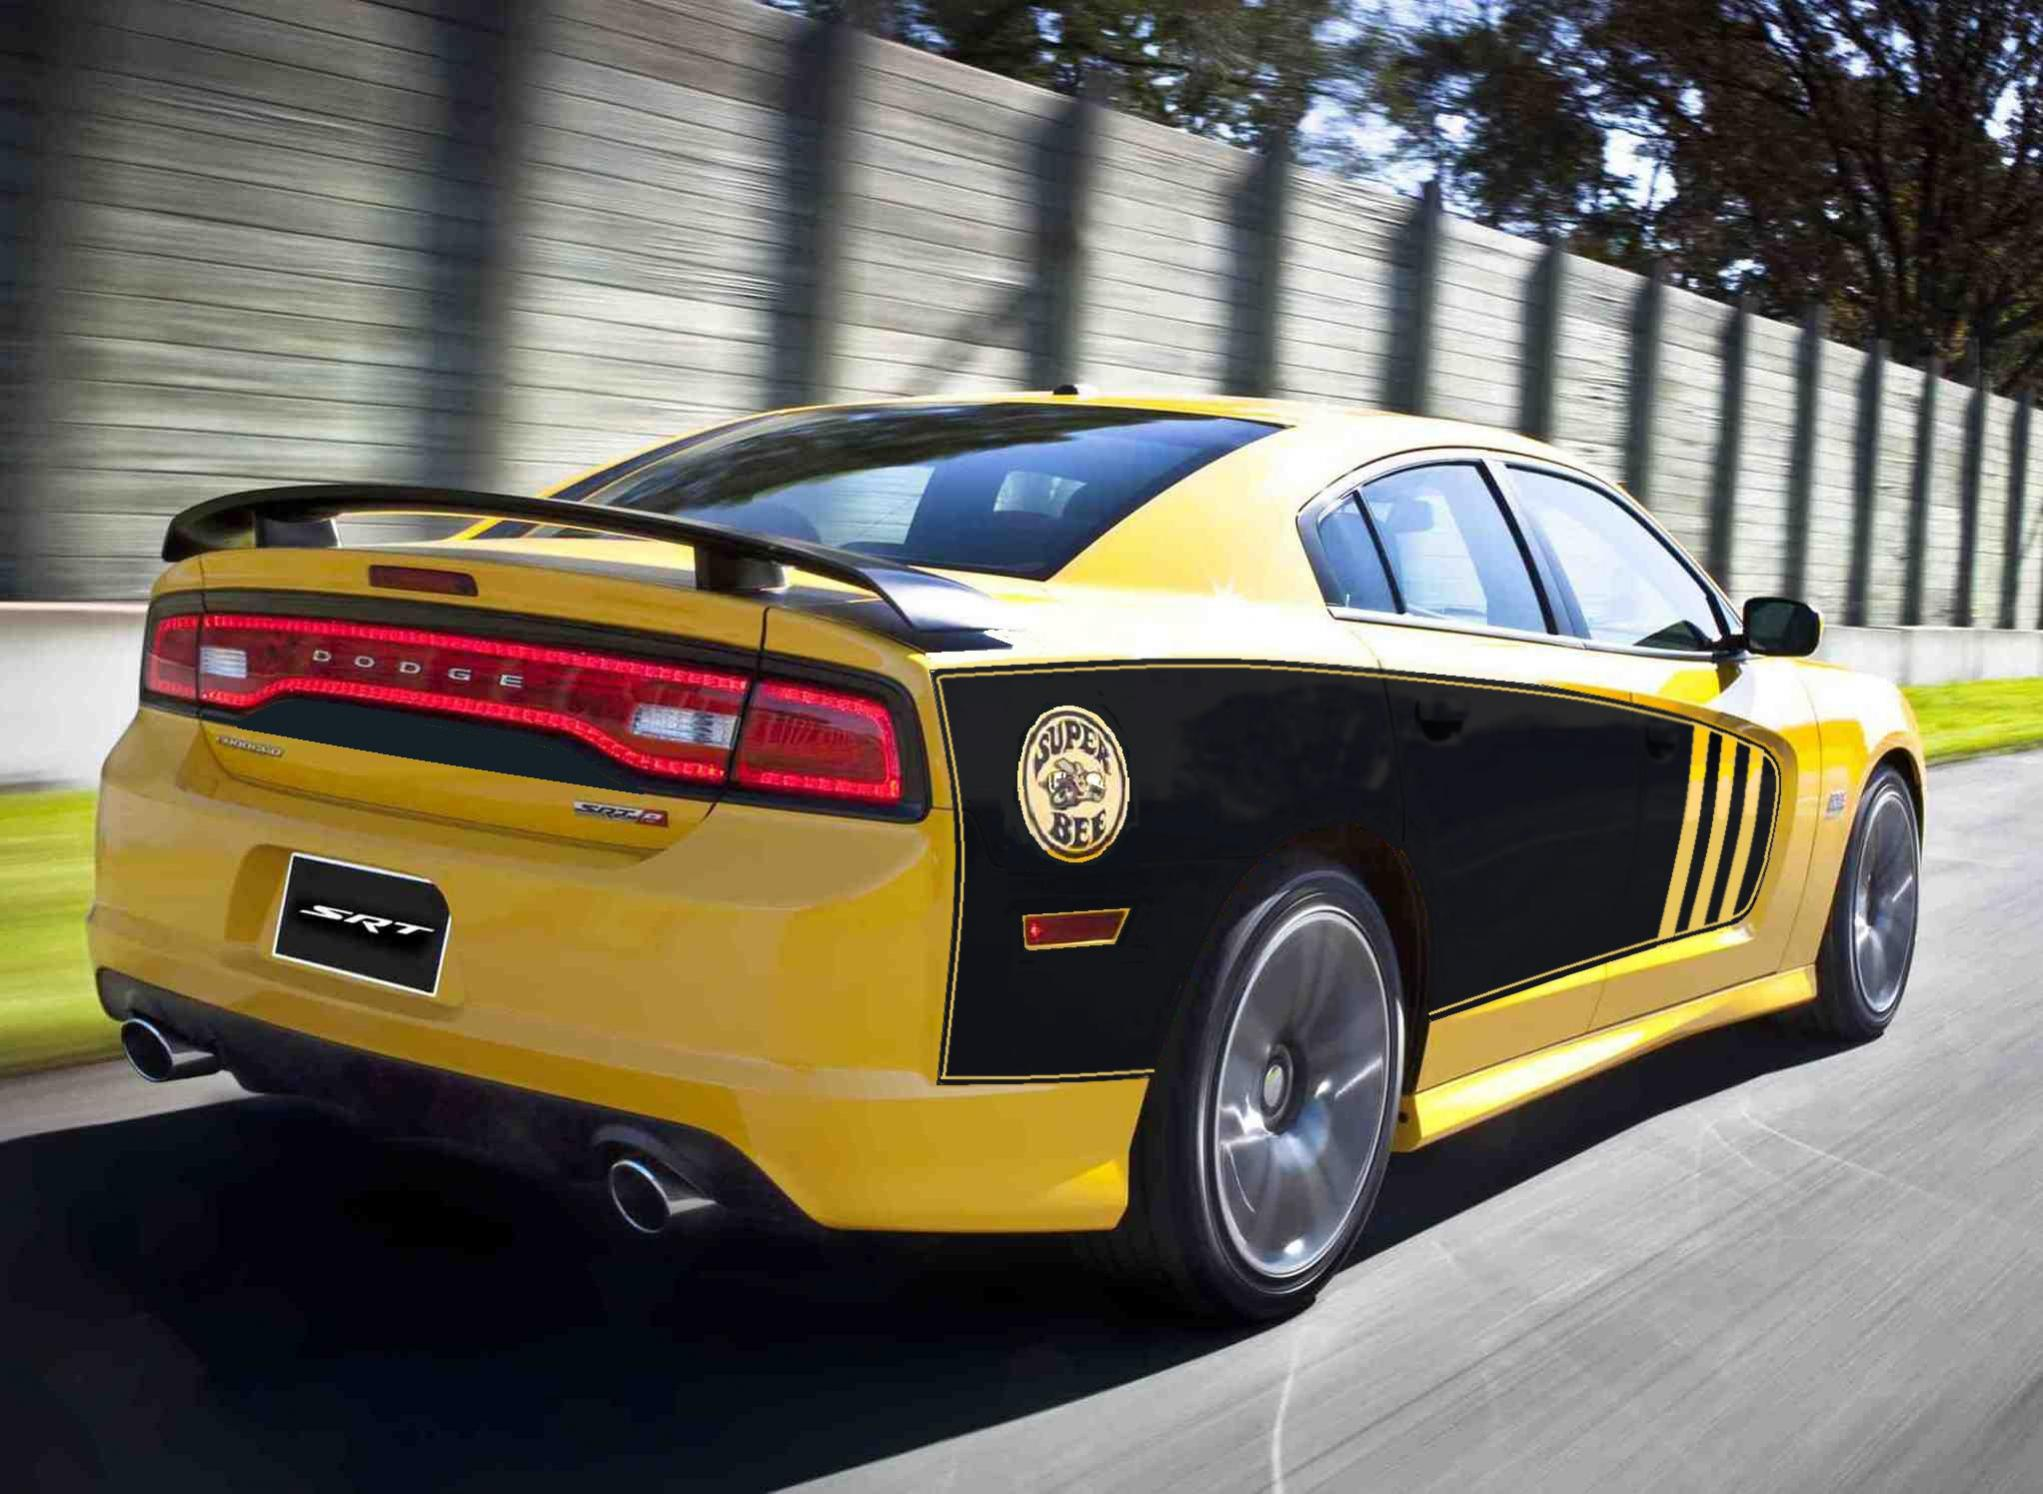 2012 Charger SRT8 Super Bee  Pricing and Options  Page 4  Dodge